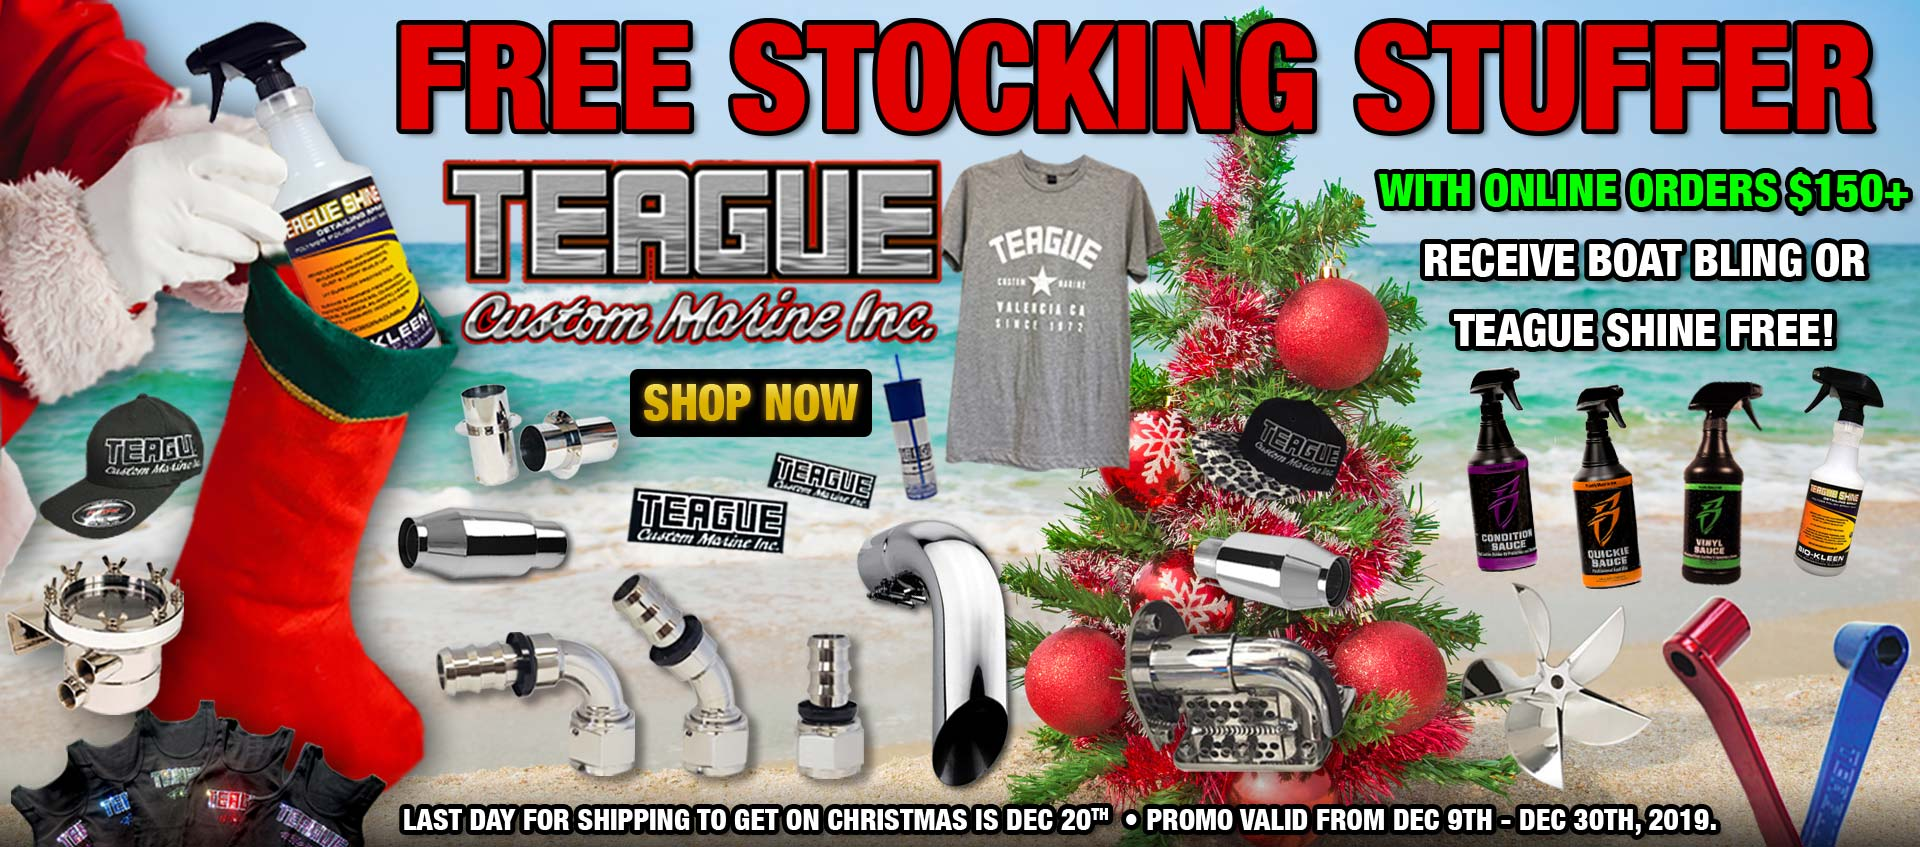 Image Offering Teague Stocking Stuffers